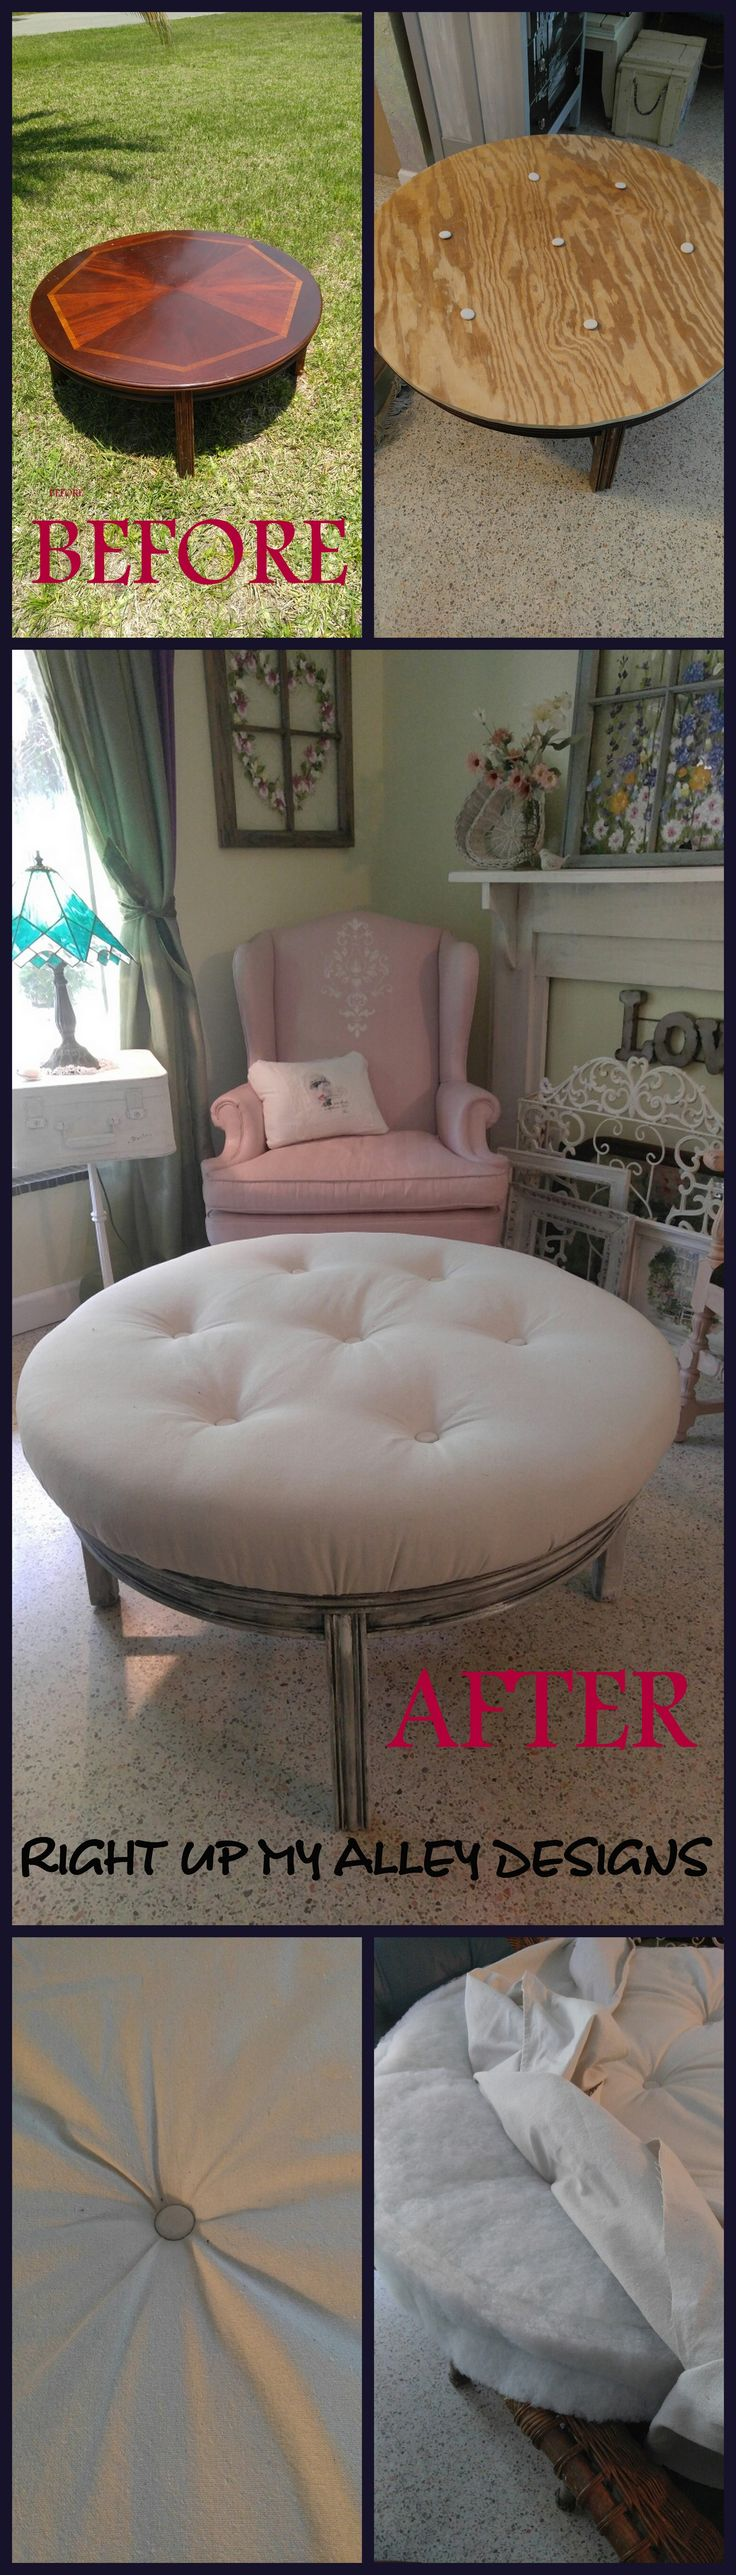 Round coffee table,Ottoman coffee table,Tufted Ottoman. Before and After, Coffee table to Tufted Ottoman See it here: https://www.etsy.com/listing/384941990/round-coffee-tabletufted-ottomantufted?ref=shop_home_feat_4